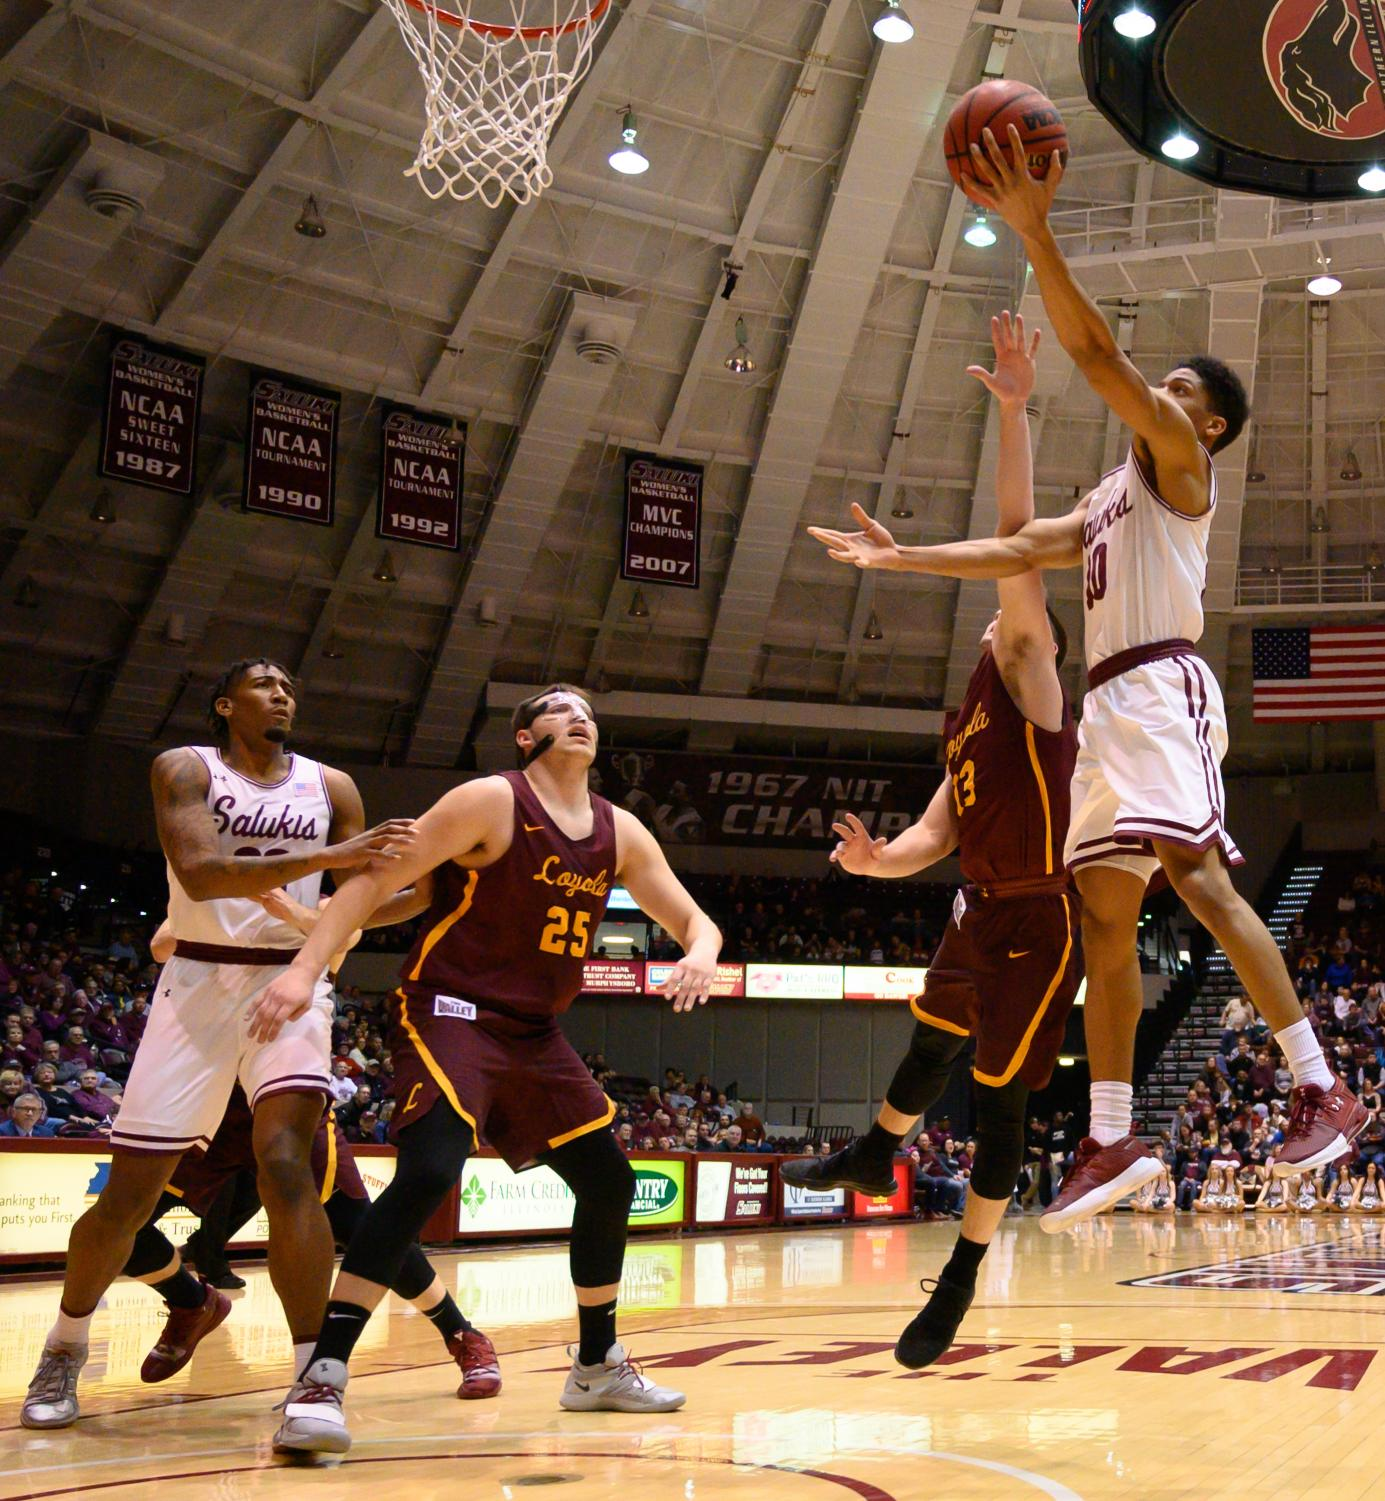 Southern+Illinois+Salukis+guard+Aaron+Cook+goes+for+a+basket+on+Sunday%2C+Feb.+24%2C+2019%2C+during+a+matchup+between+the+Southern+Illinois+Salukis+and+the+Loyola+Ramblers+at+SIU+Arena.